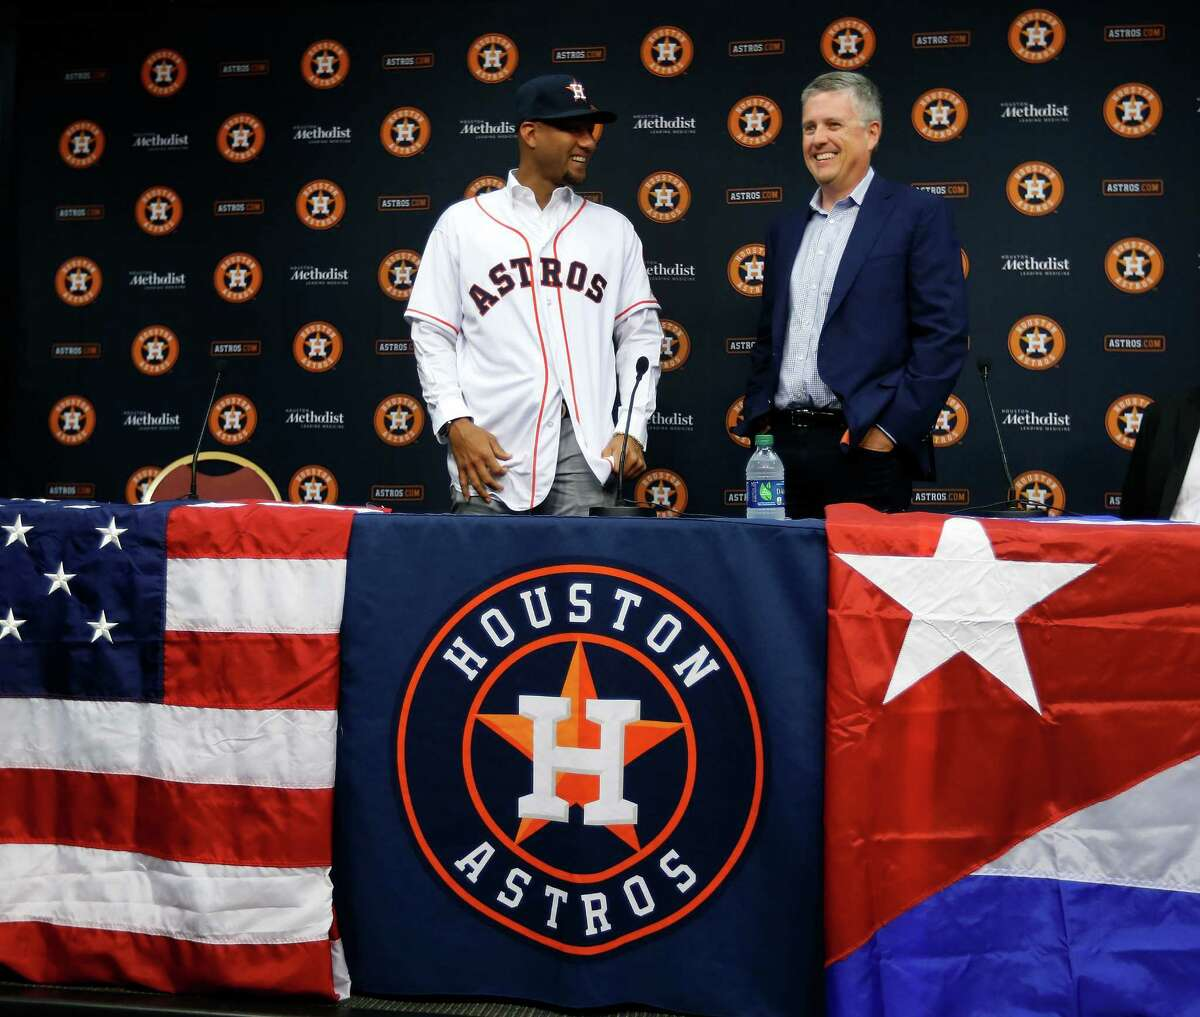 Cuban infielder Yulieski Gurriel is introduced to the media by Houston Astros General Manager Jeff Luhnow after they agreed to terms with him, Saturday, July 16, 2016, in Houston.